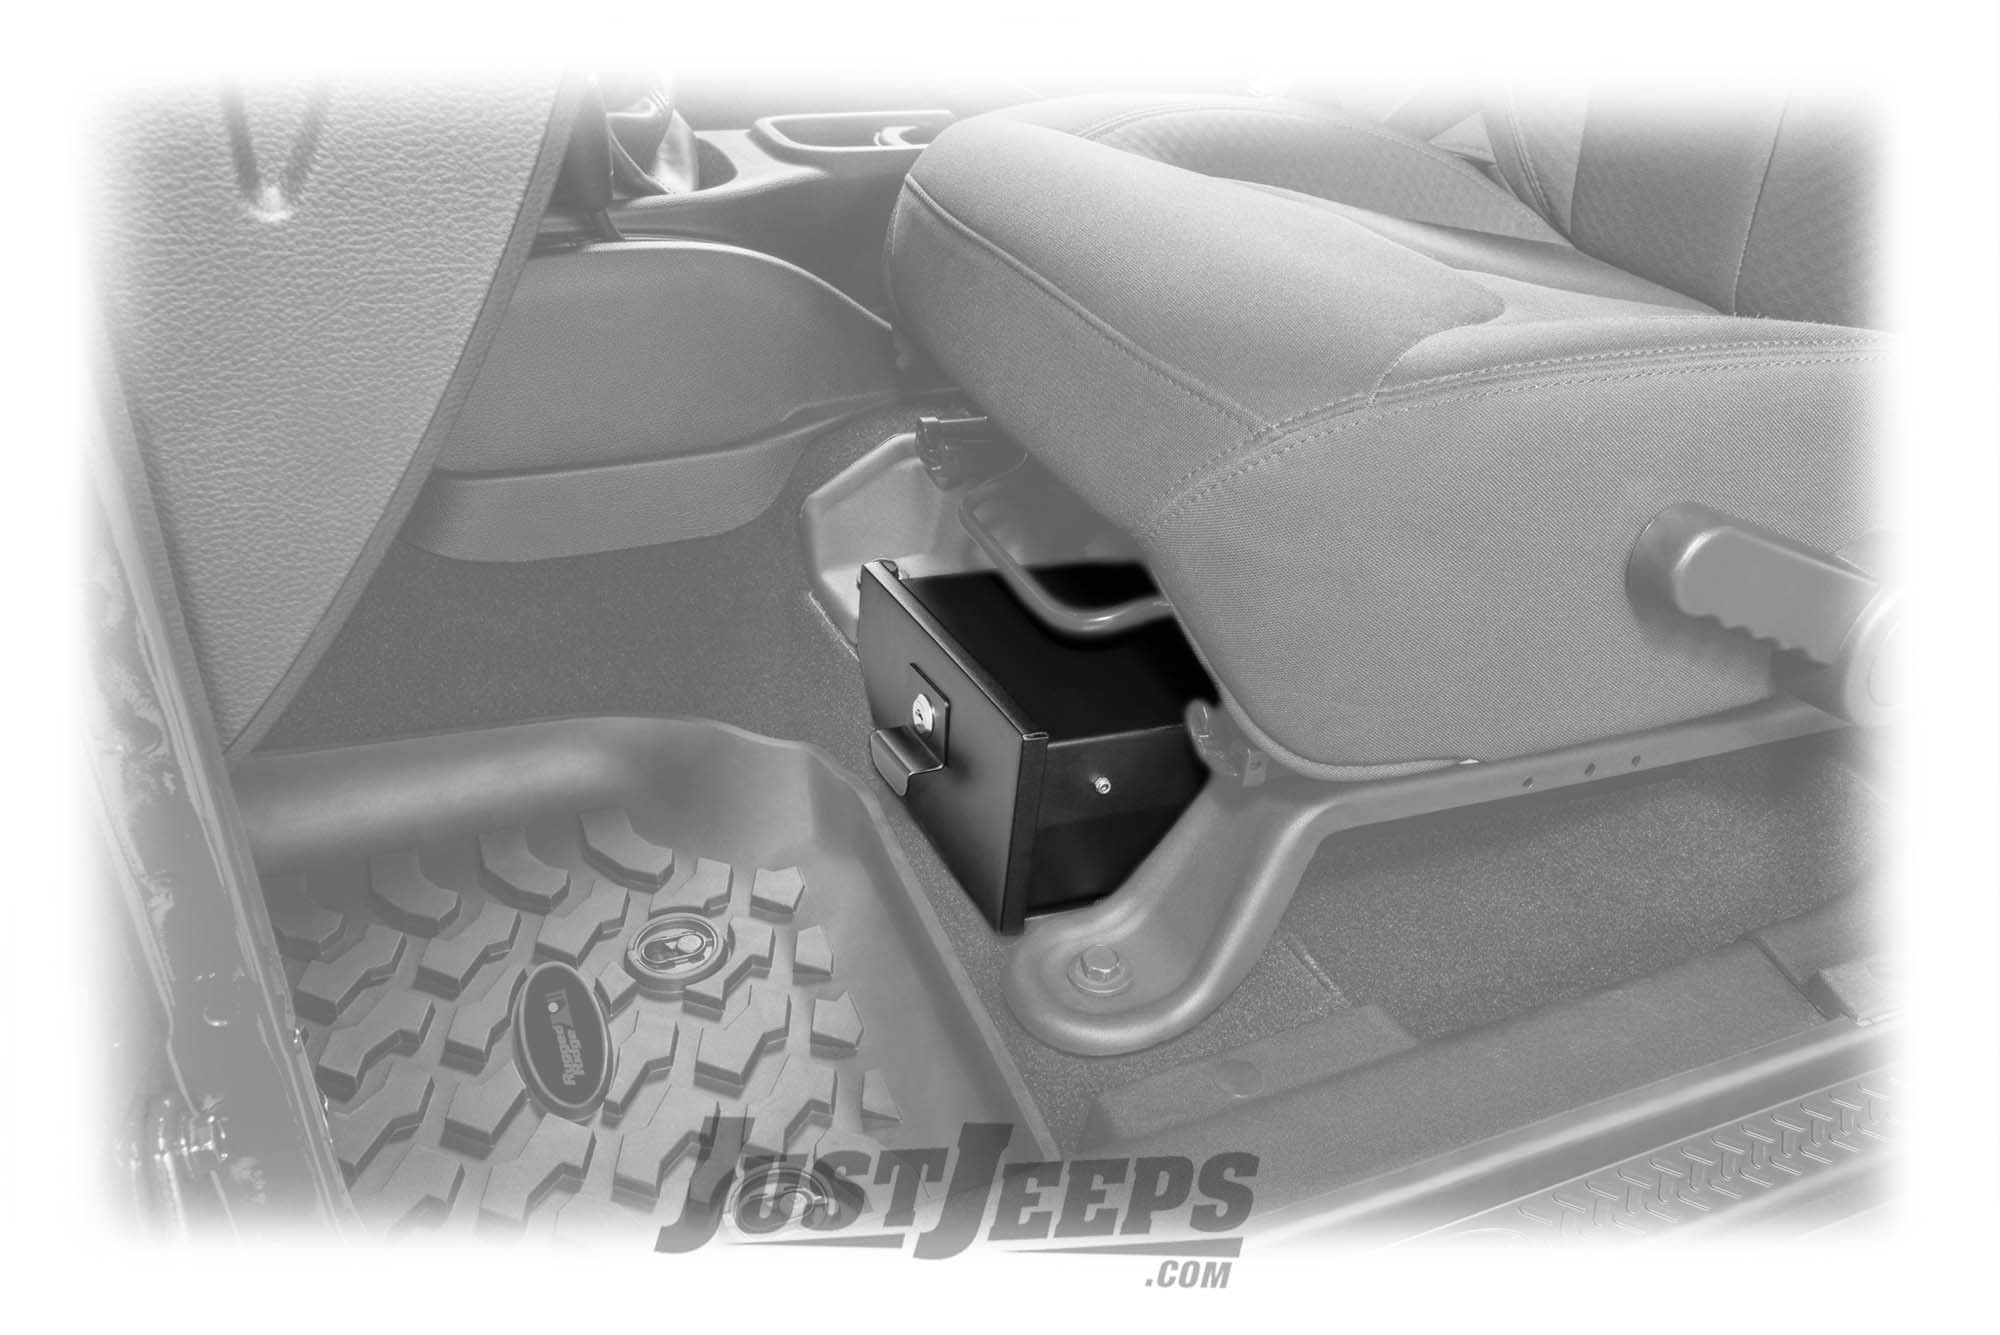 fbd97e6a1bc Just Jeeps Vertically Driven Products Under Seat Storage Vault For 2007-18  Jeep Wrangler JK Unlimited 4 Door Models - Jeep Wrangler JK Unlimited -  Shop By ...